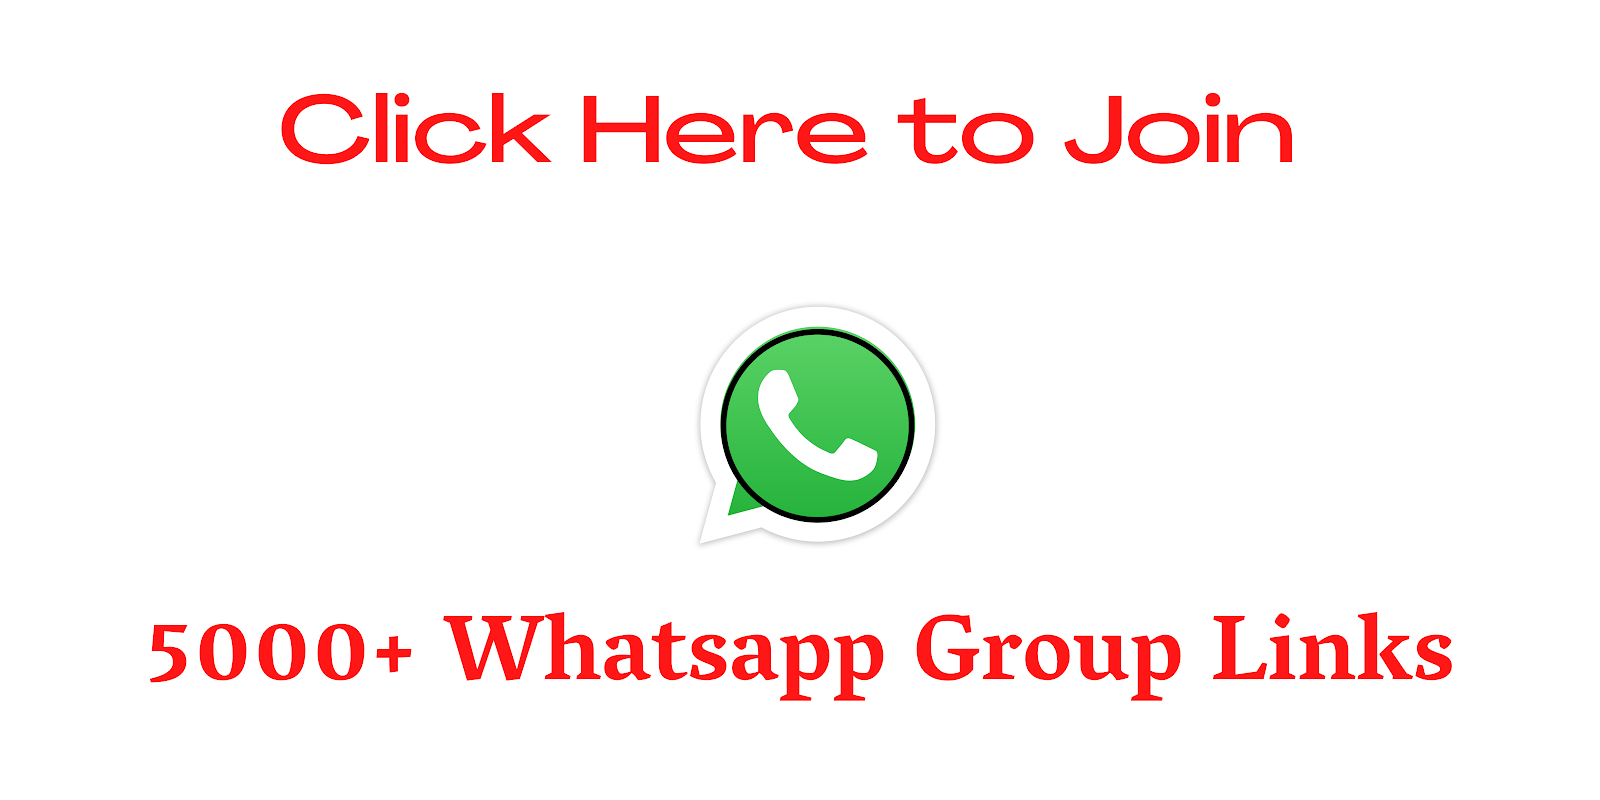 Whatsapp gruppe gay How to